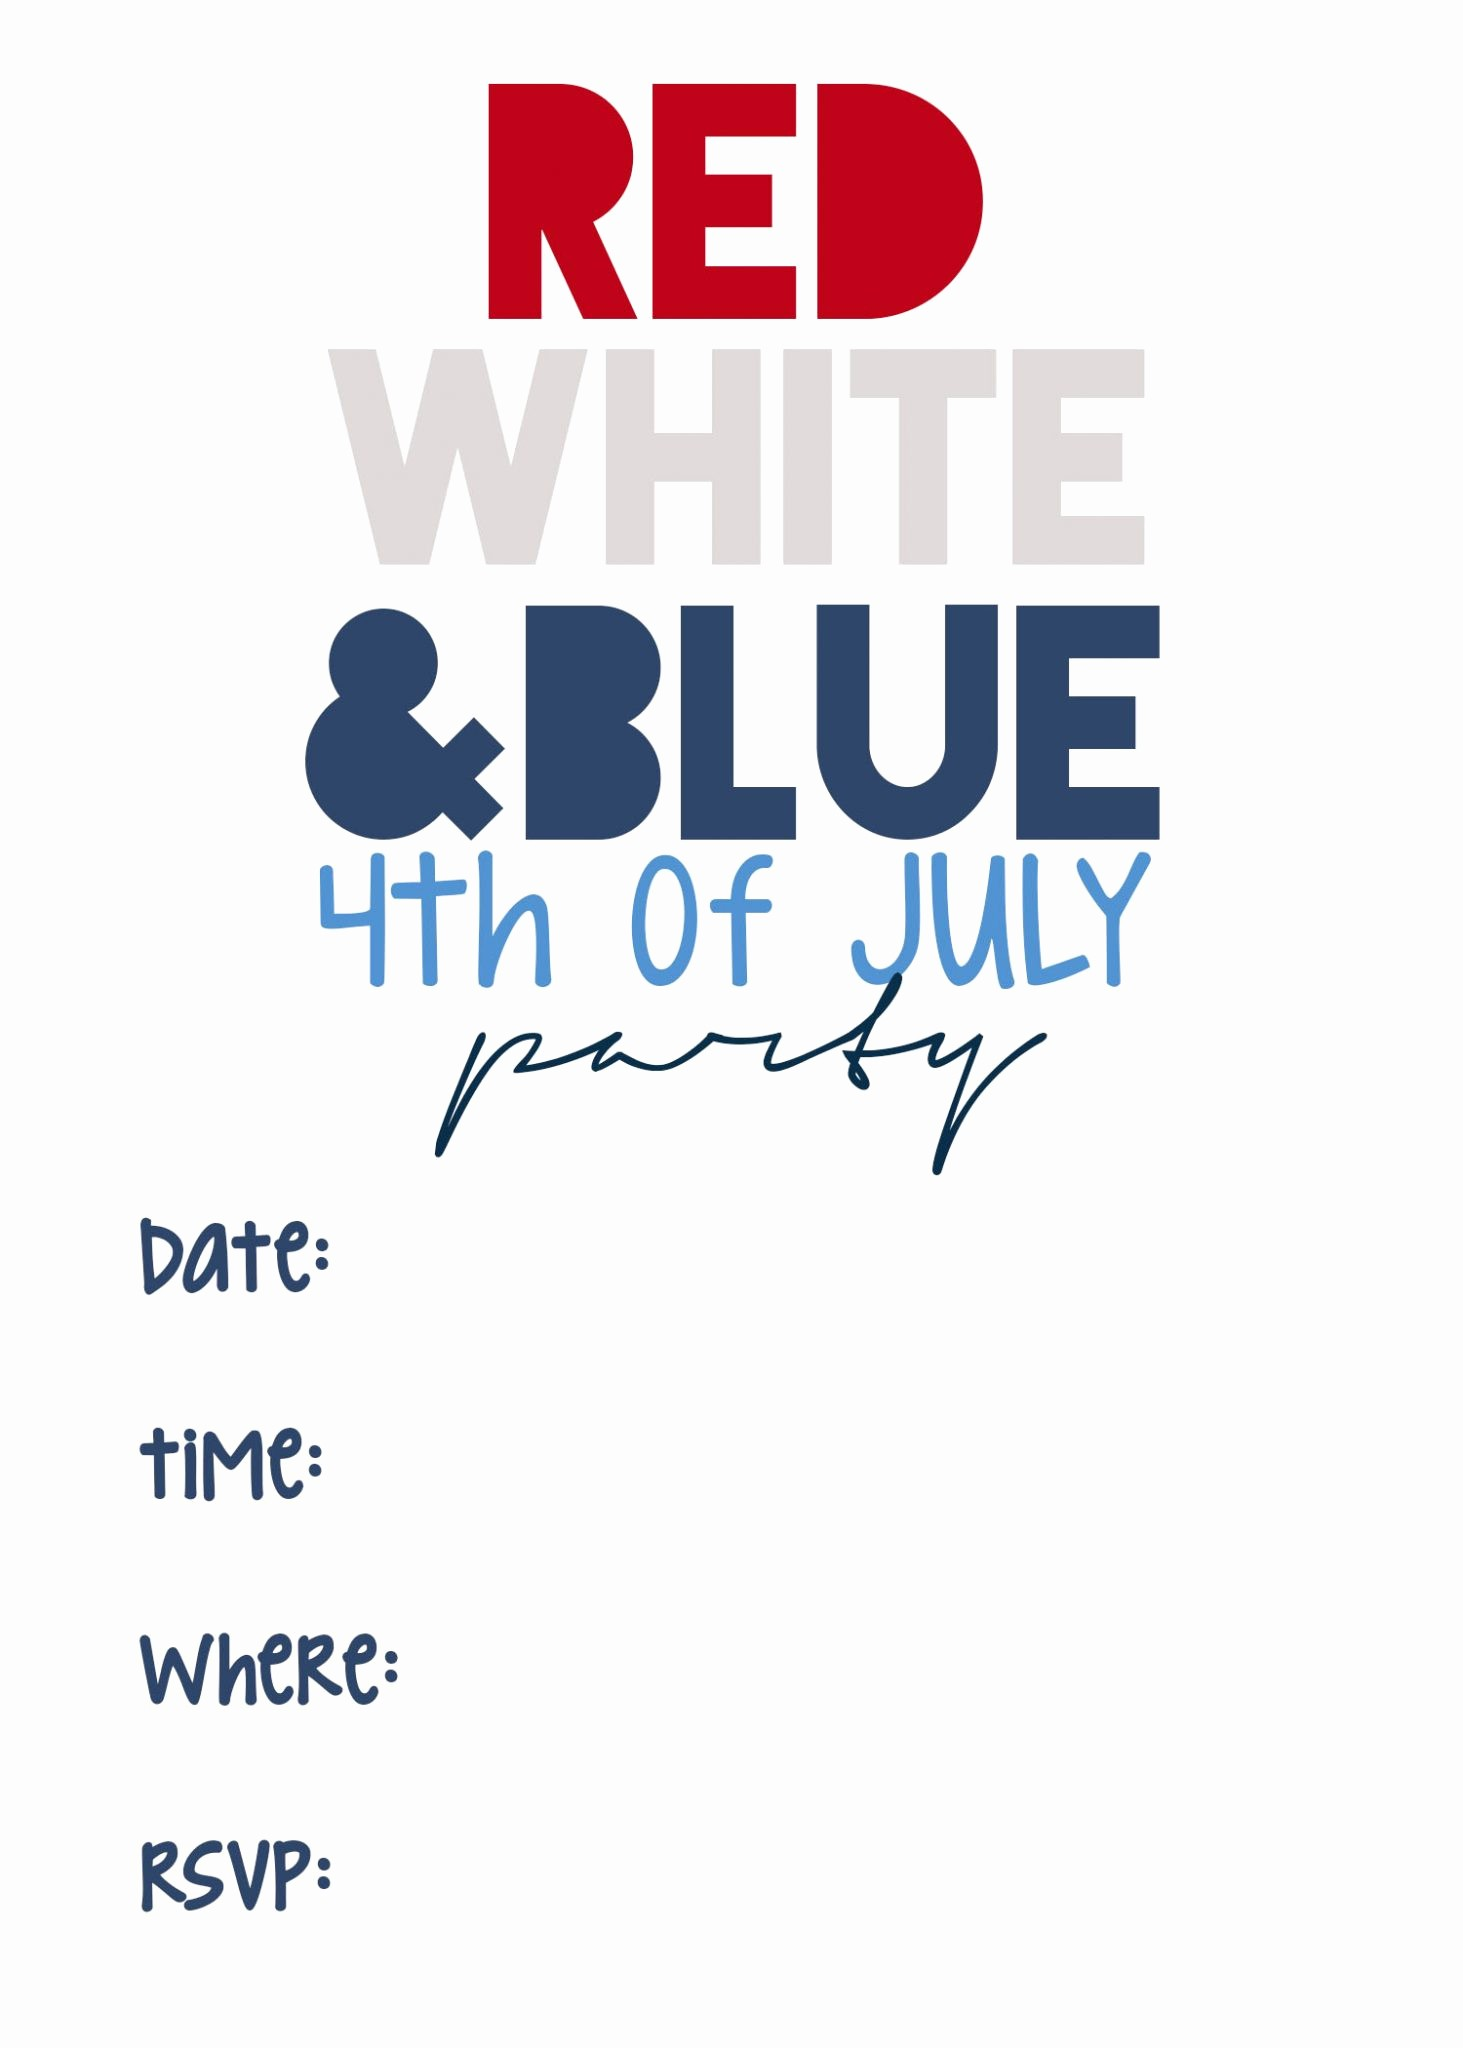 Fourth Of July Party Invitations Luxury 4th Of July Printable Invitations